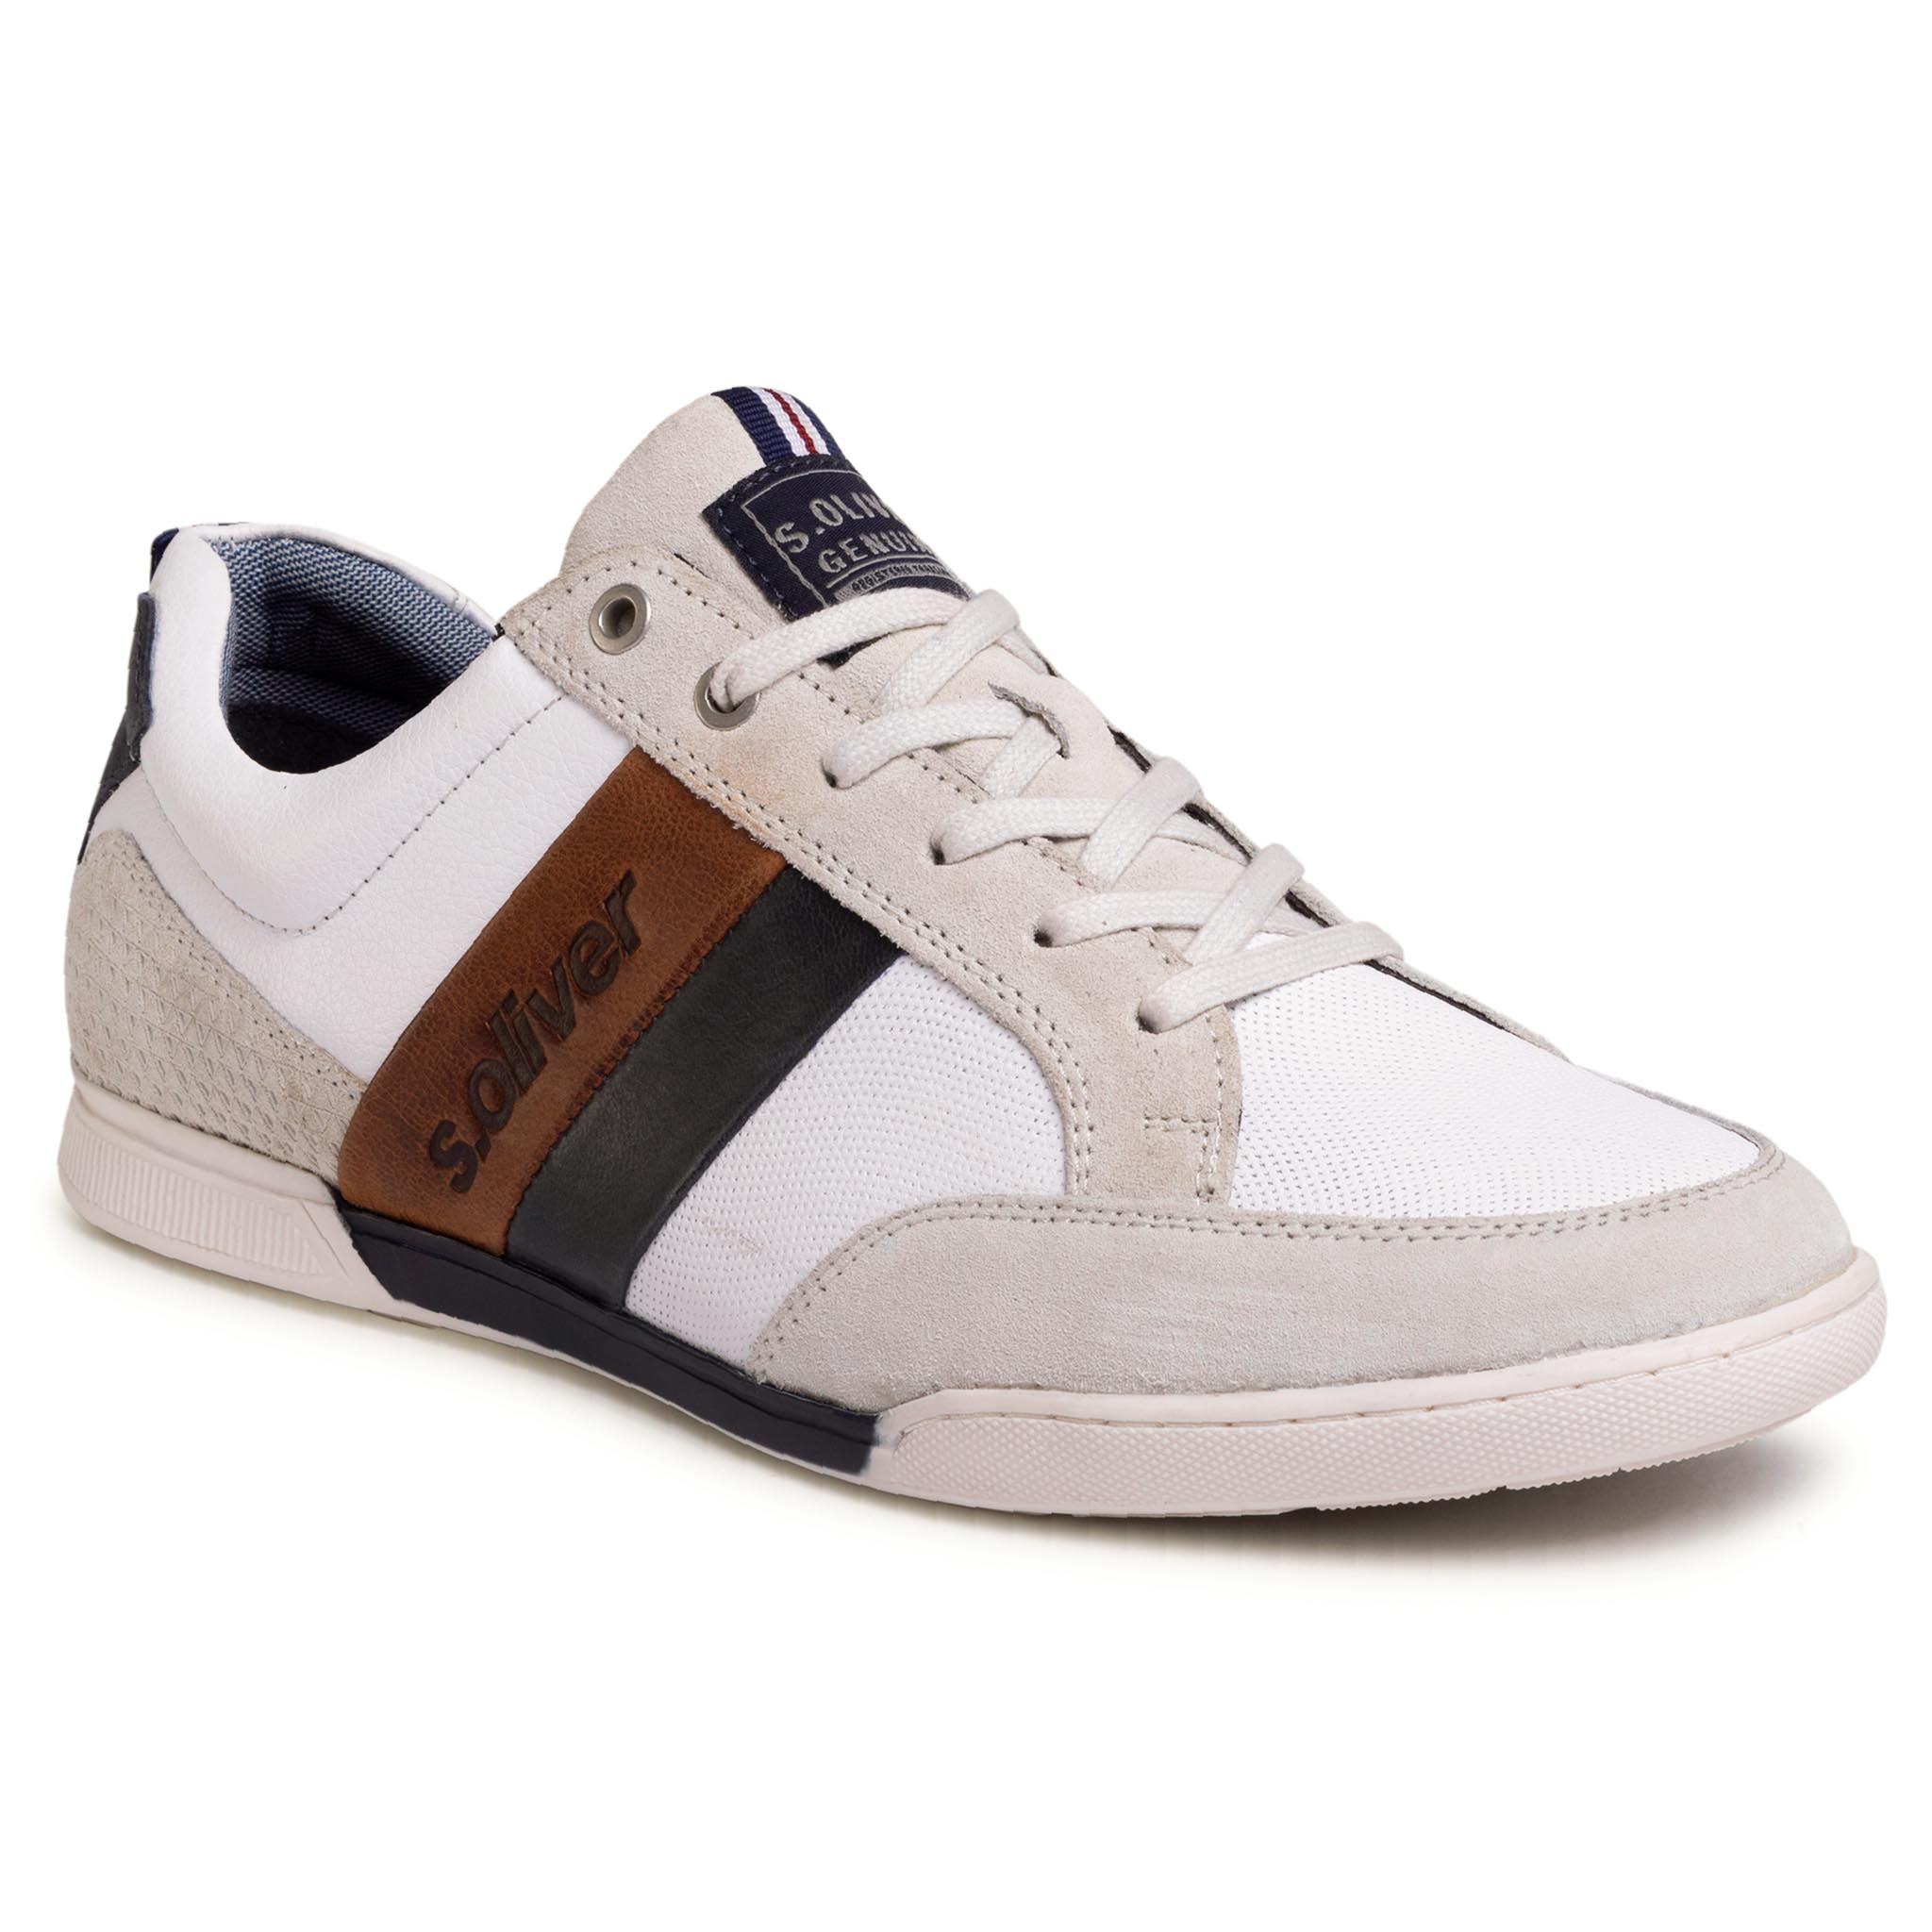 Sneakers S.OLIVER - 5-13619-24 White 100